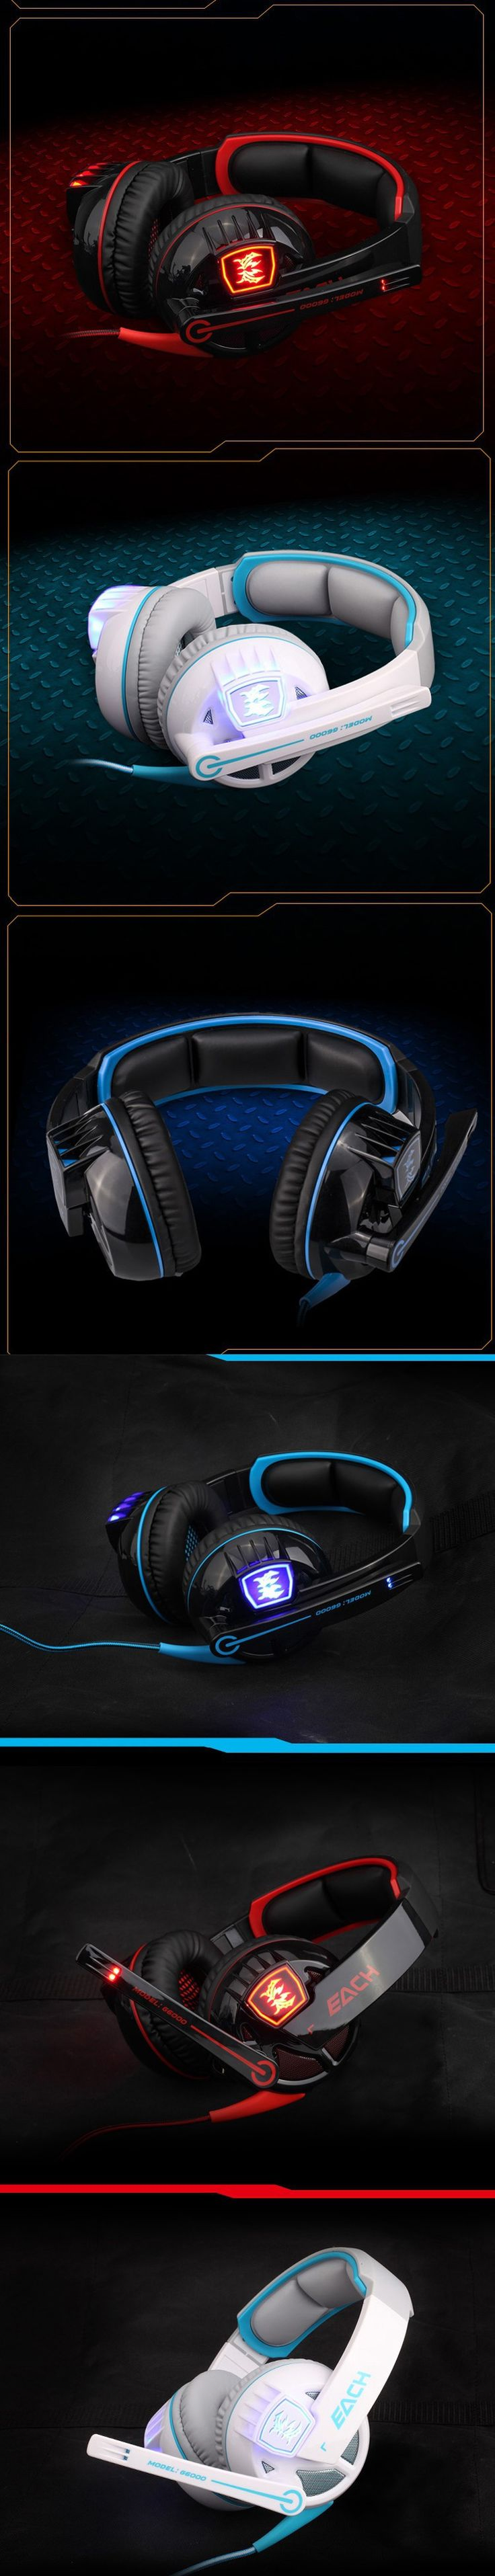 TOP Band EACH G6000 Stereo Gaming Headphone Headset Casque audio with Mic Volume Control Stereo Bass LED Light For PS4 PC Gamer   #HeadphonesGaming